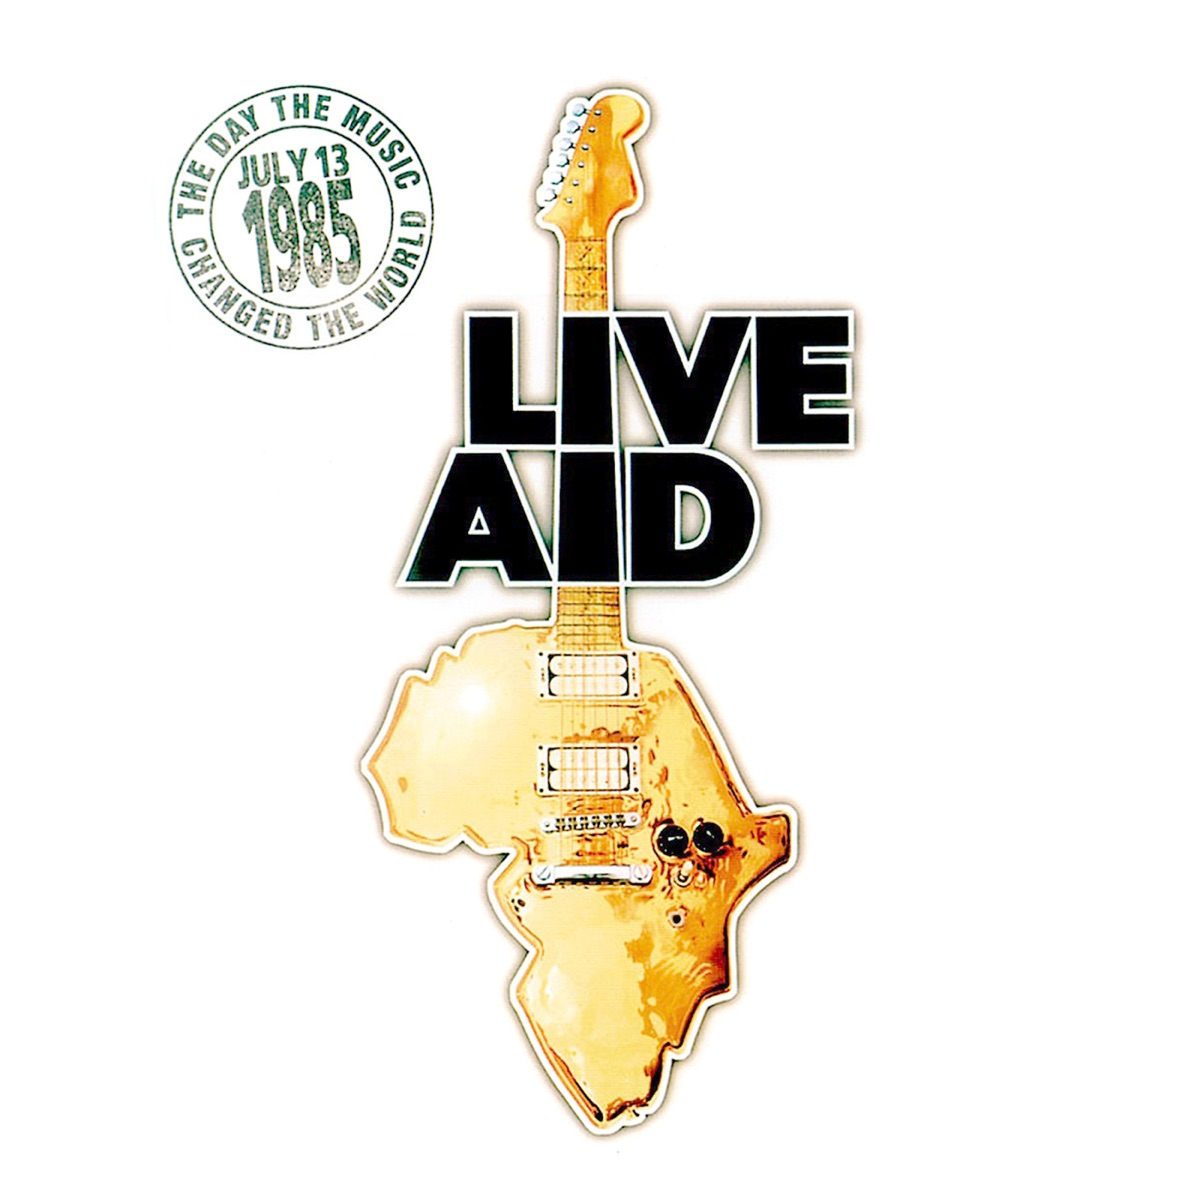 Live Aid Live 13th July 1985 Various Artists CD cover